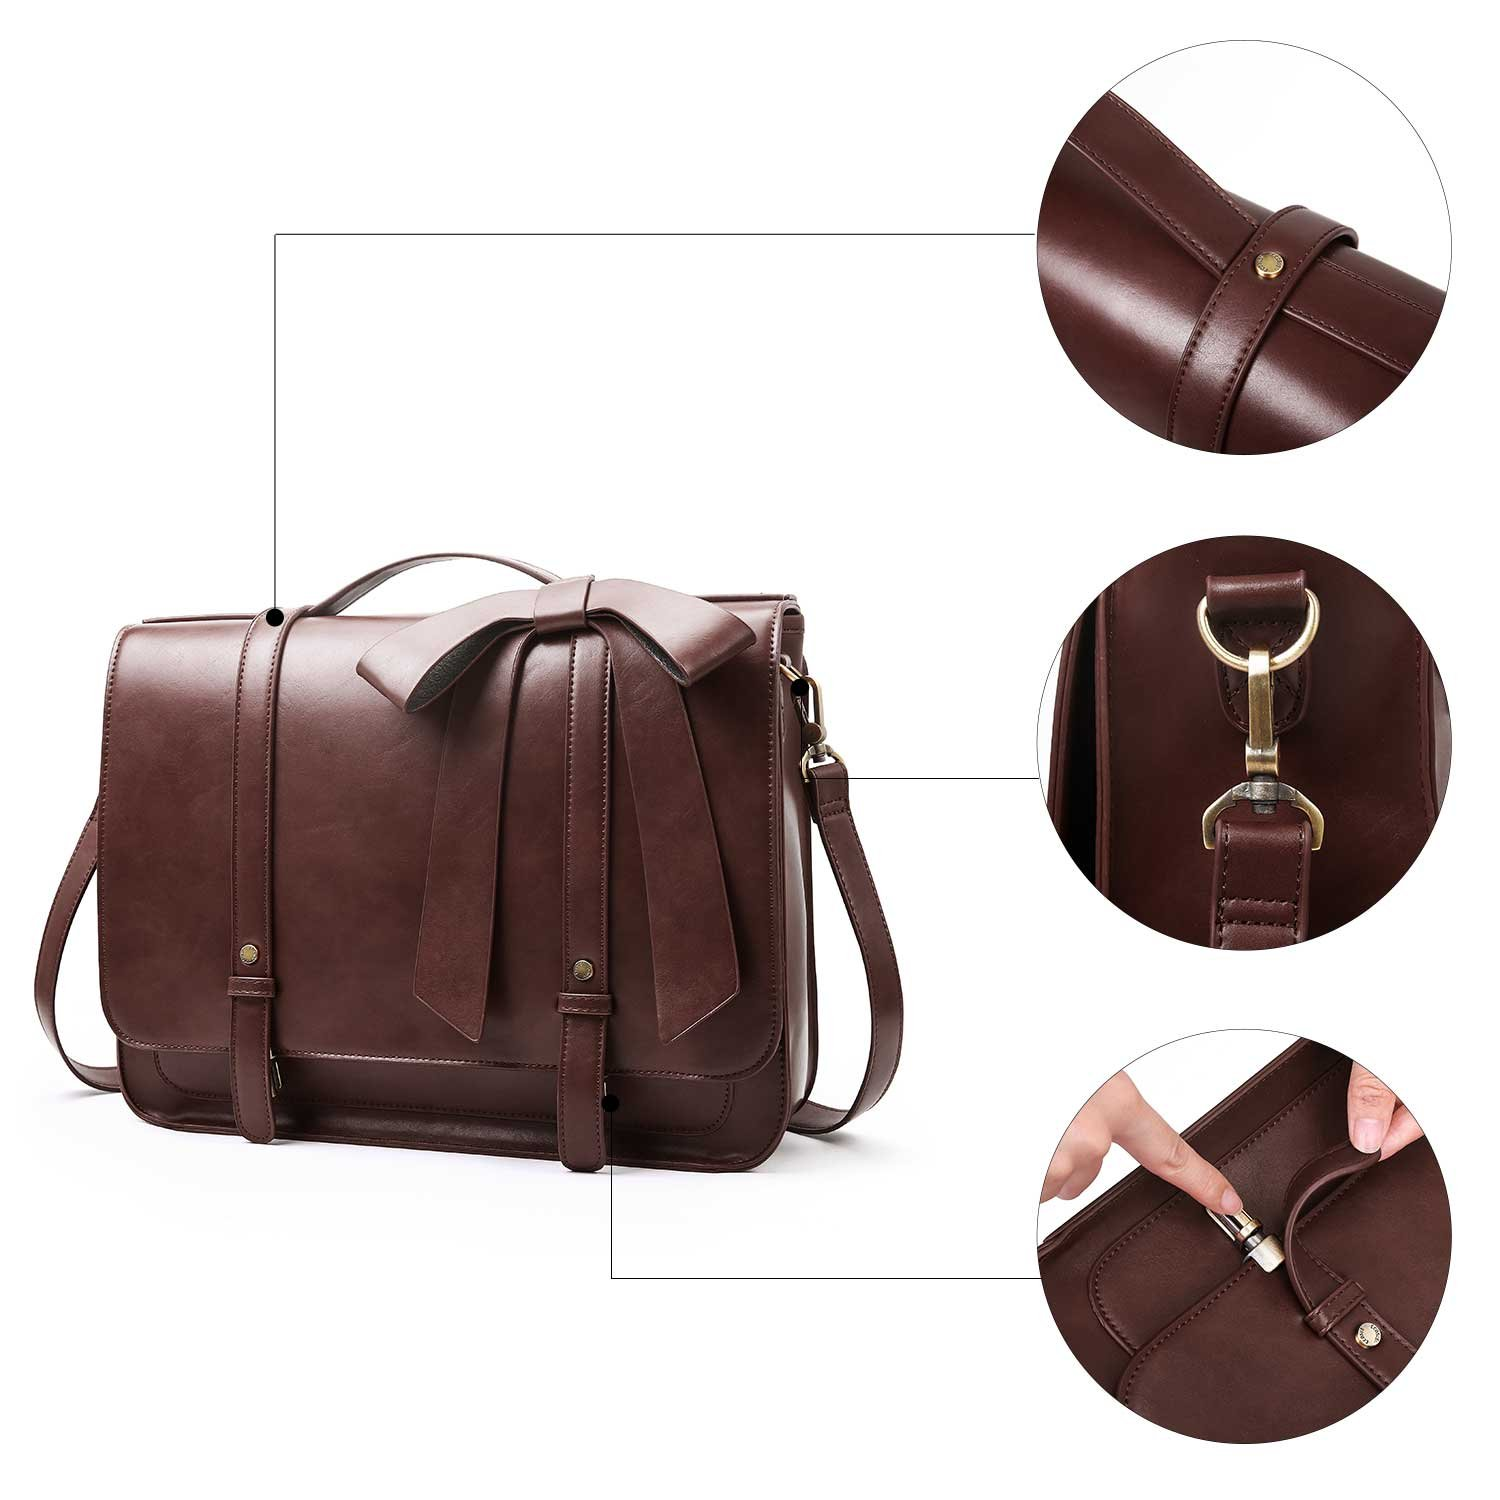 ECOSUSI Ladies Briefcase PU Leather Laptop Backpack Shoulder Satchel Computer Bag with Detachable Bow, Coffee by ECOSUSI (Image #6)